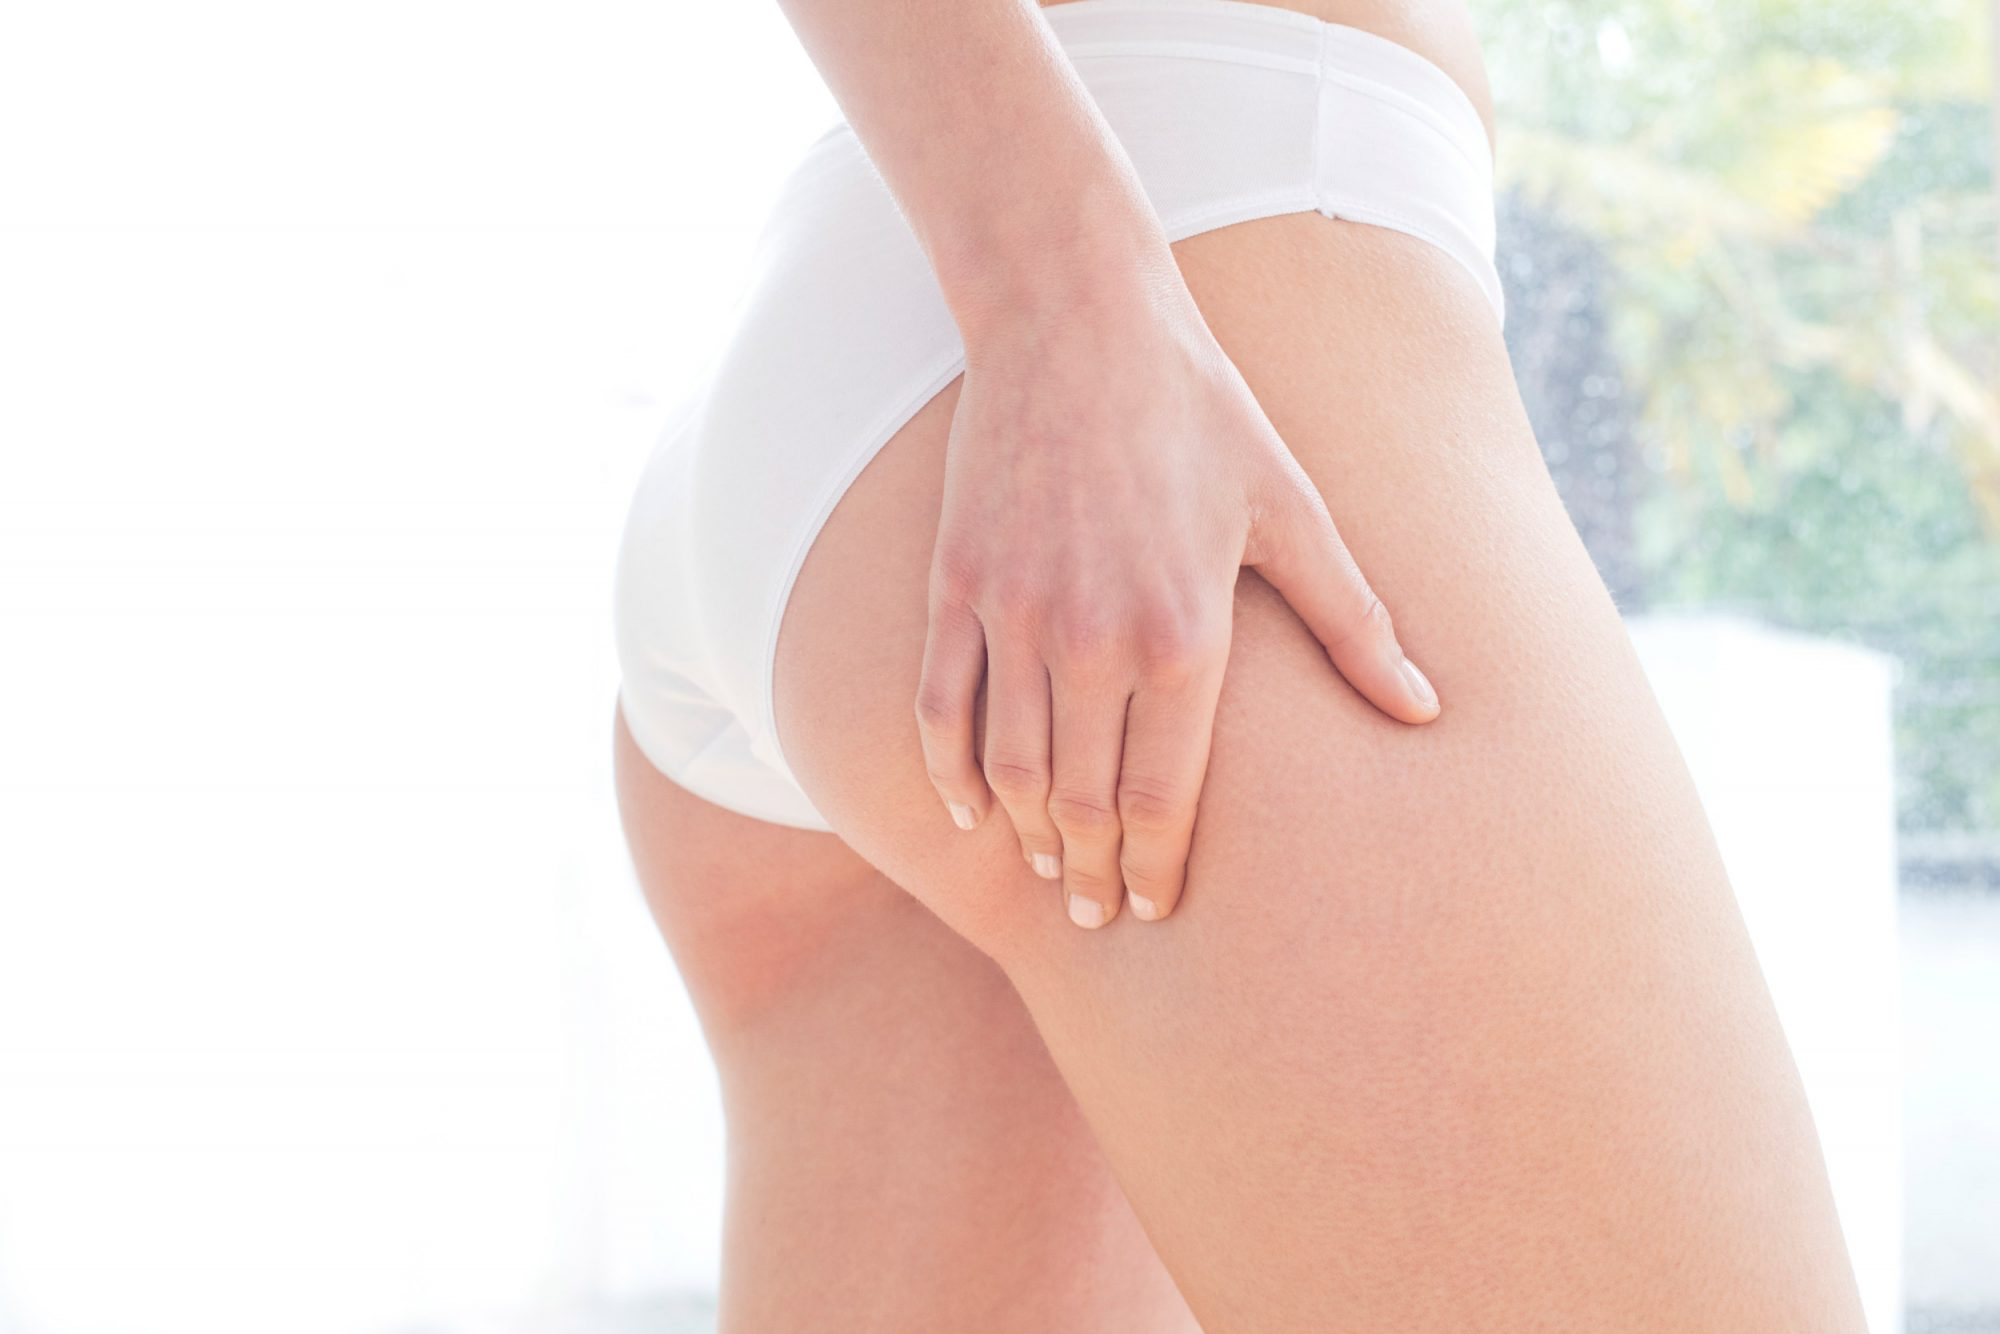 SEO: Emtone procedure for cellulite